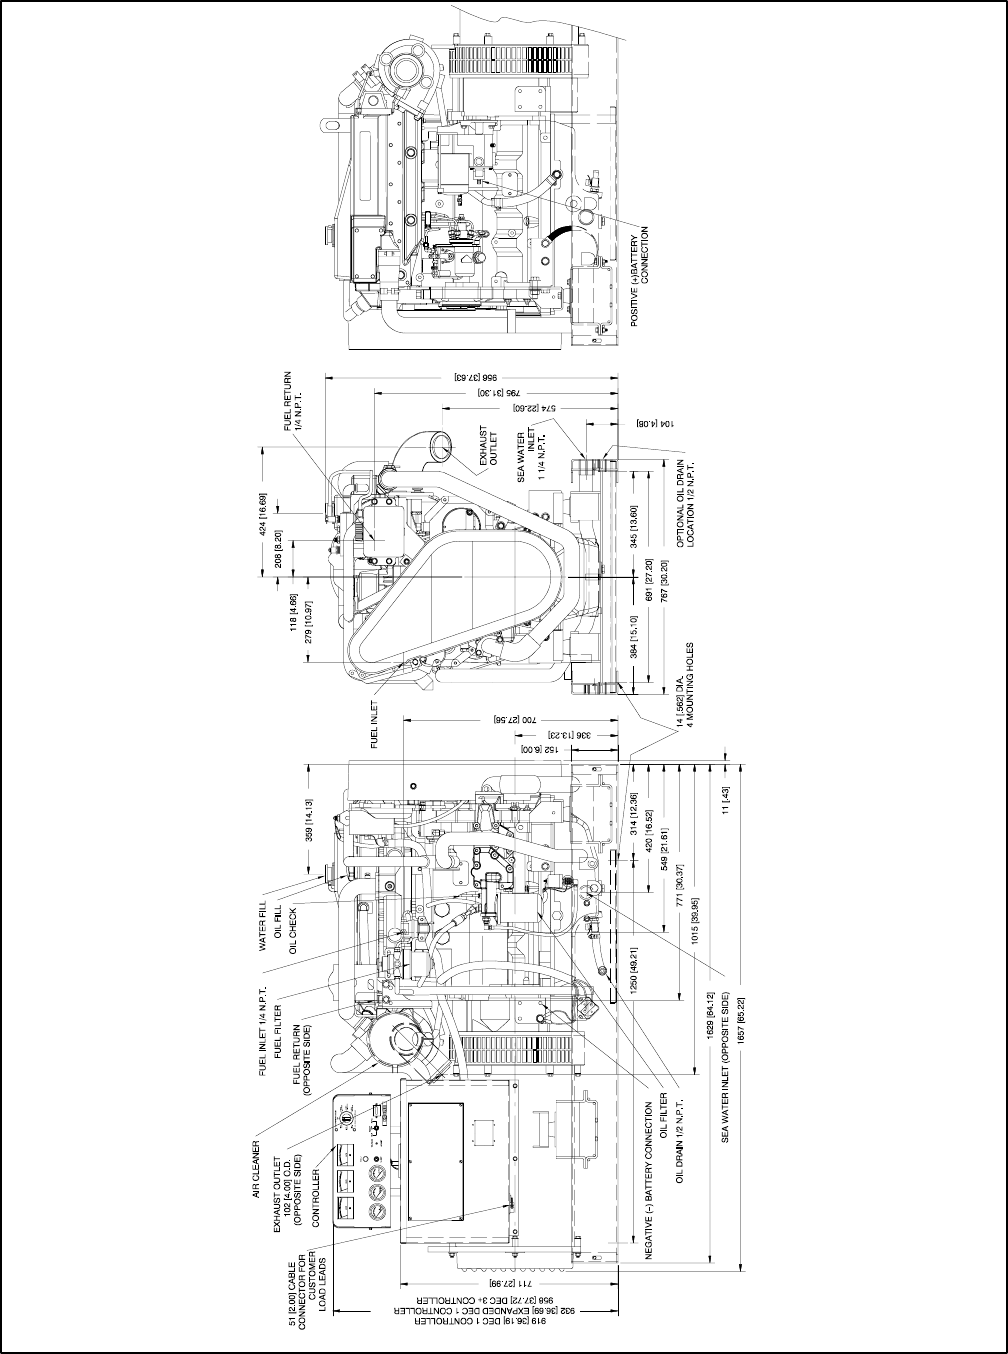 Kohler 8eoz Wiring Diagram Just Diagrams K241 Page 62 Of Portable Generator 6 5efoz User Guide E Z Go